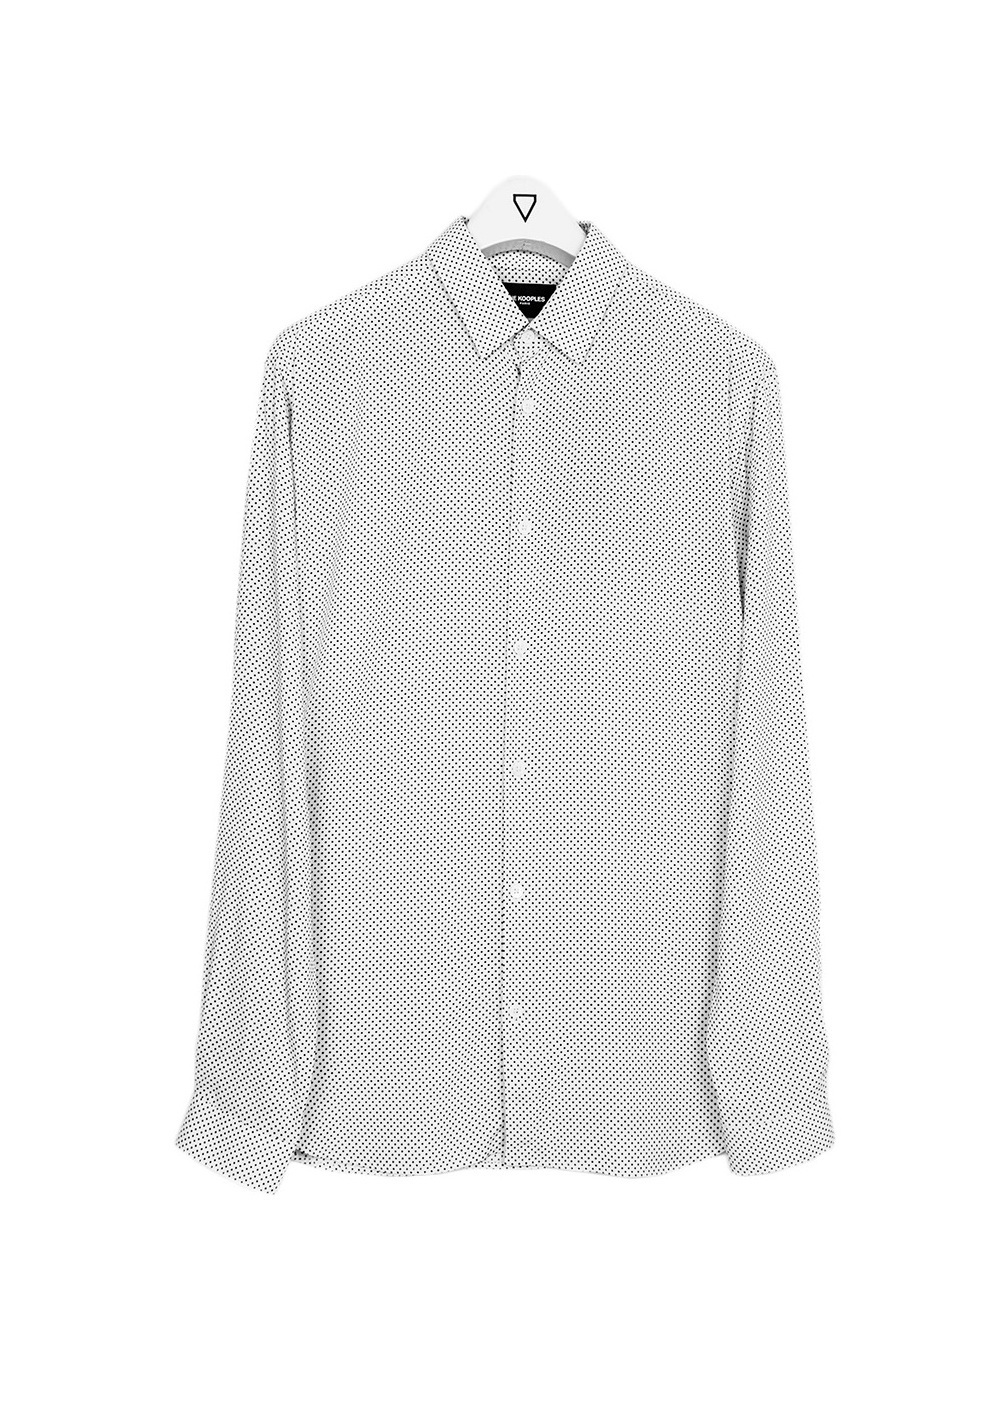 "15 3/4 THE KOOPLES SHIRT ""KOOPLES-SH04"""